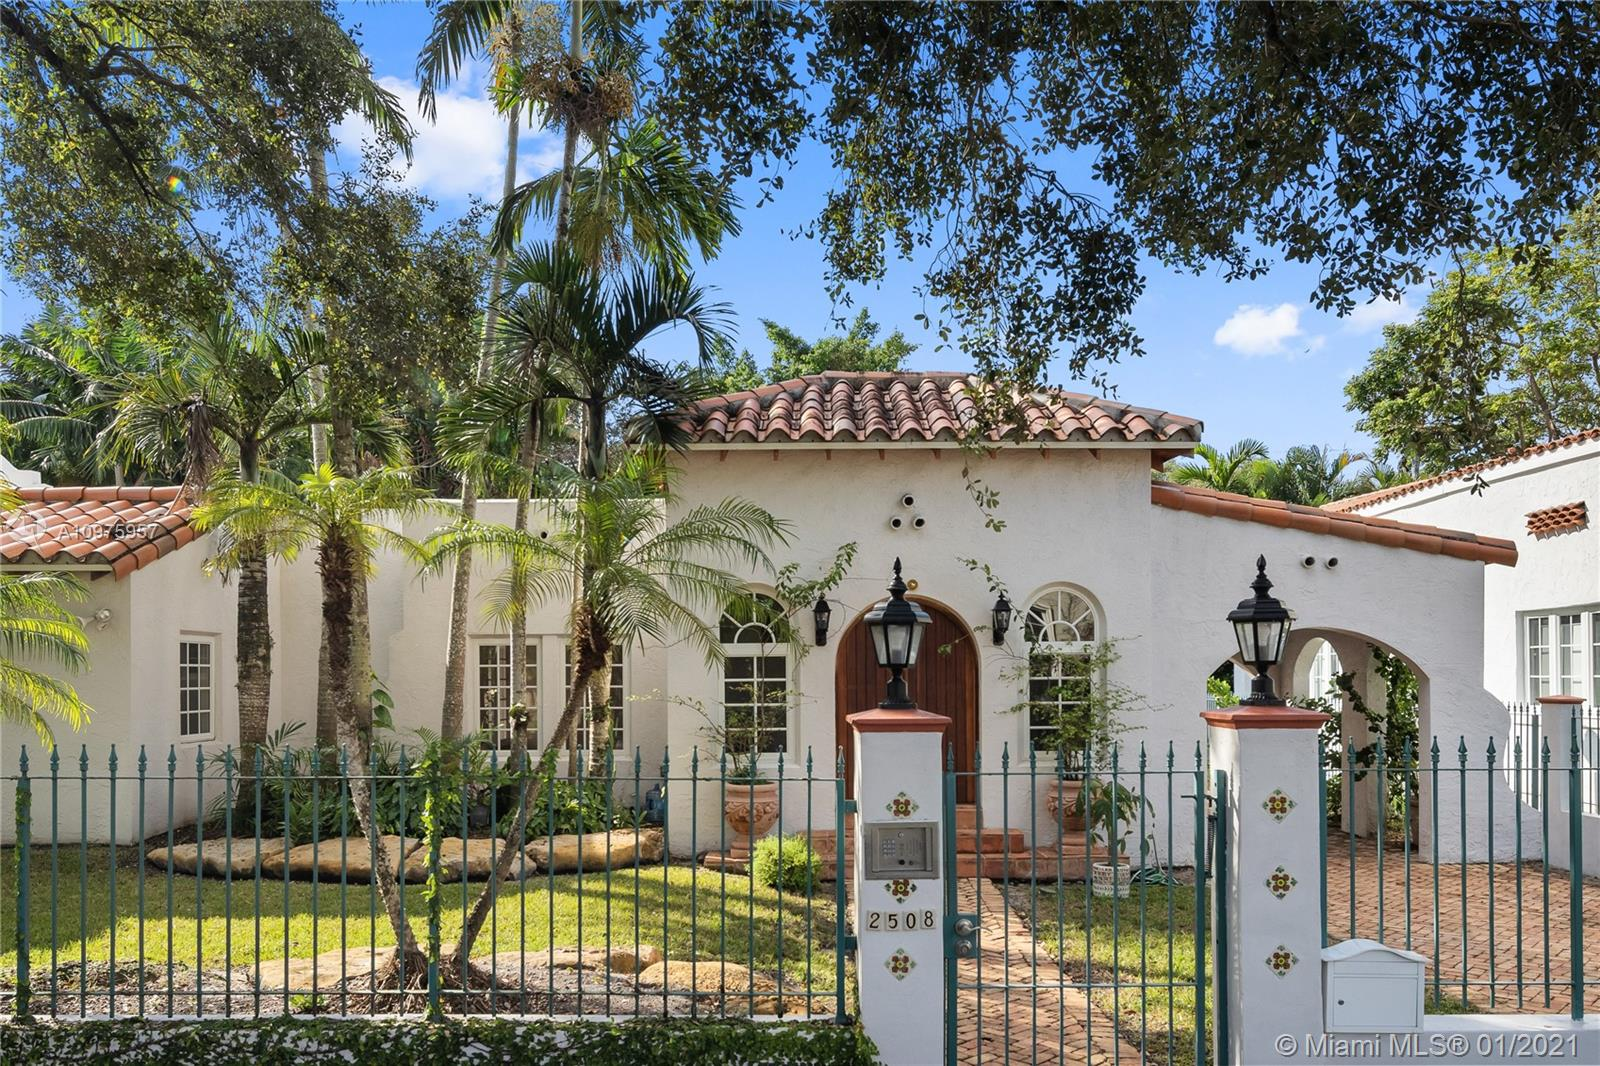 This beautiful 3000 Square feet Old Spanish home has been remodeled to perfection exhibiting all aspects of its original 1925 charm. It features 4 bedrooms and 3.5 bathrooms, large open light filled spaces, beautiful wood floors, impact windows and doors. The main home has a very large master bedroom and 2 guest bedrooms. There is a guest bedroom and bathroom above the 1 car garage, perfect for a home office or in-laws quarters. This property is fabulously located close to the Biltmore Hotel and Golf Course, St. Theresa's Catholic School, St Philip's Episcopal School, Shopping and Restaurants.